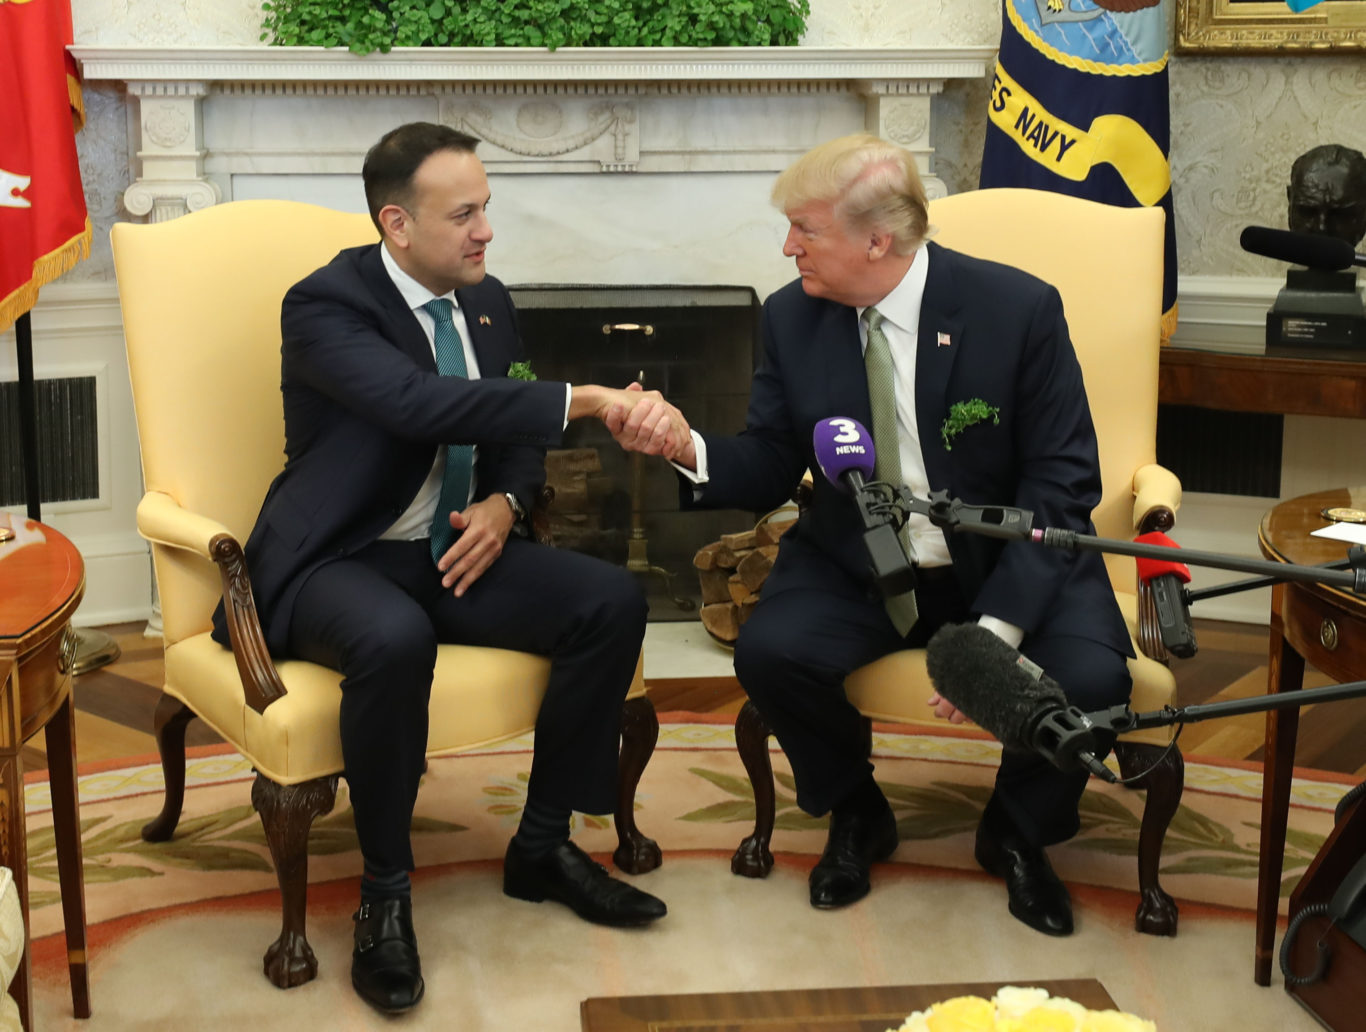 Taoiseach criticised over phone call to council on behalf of Trump